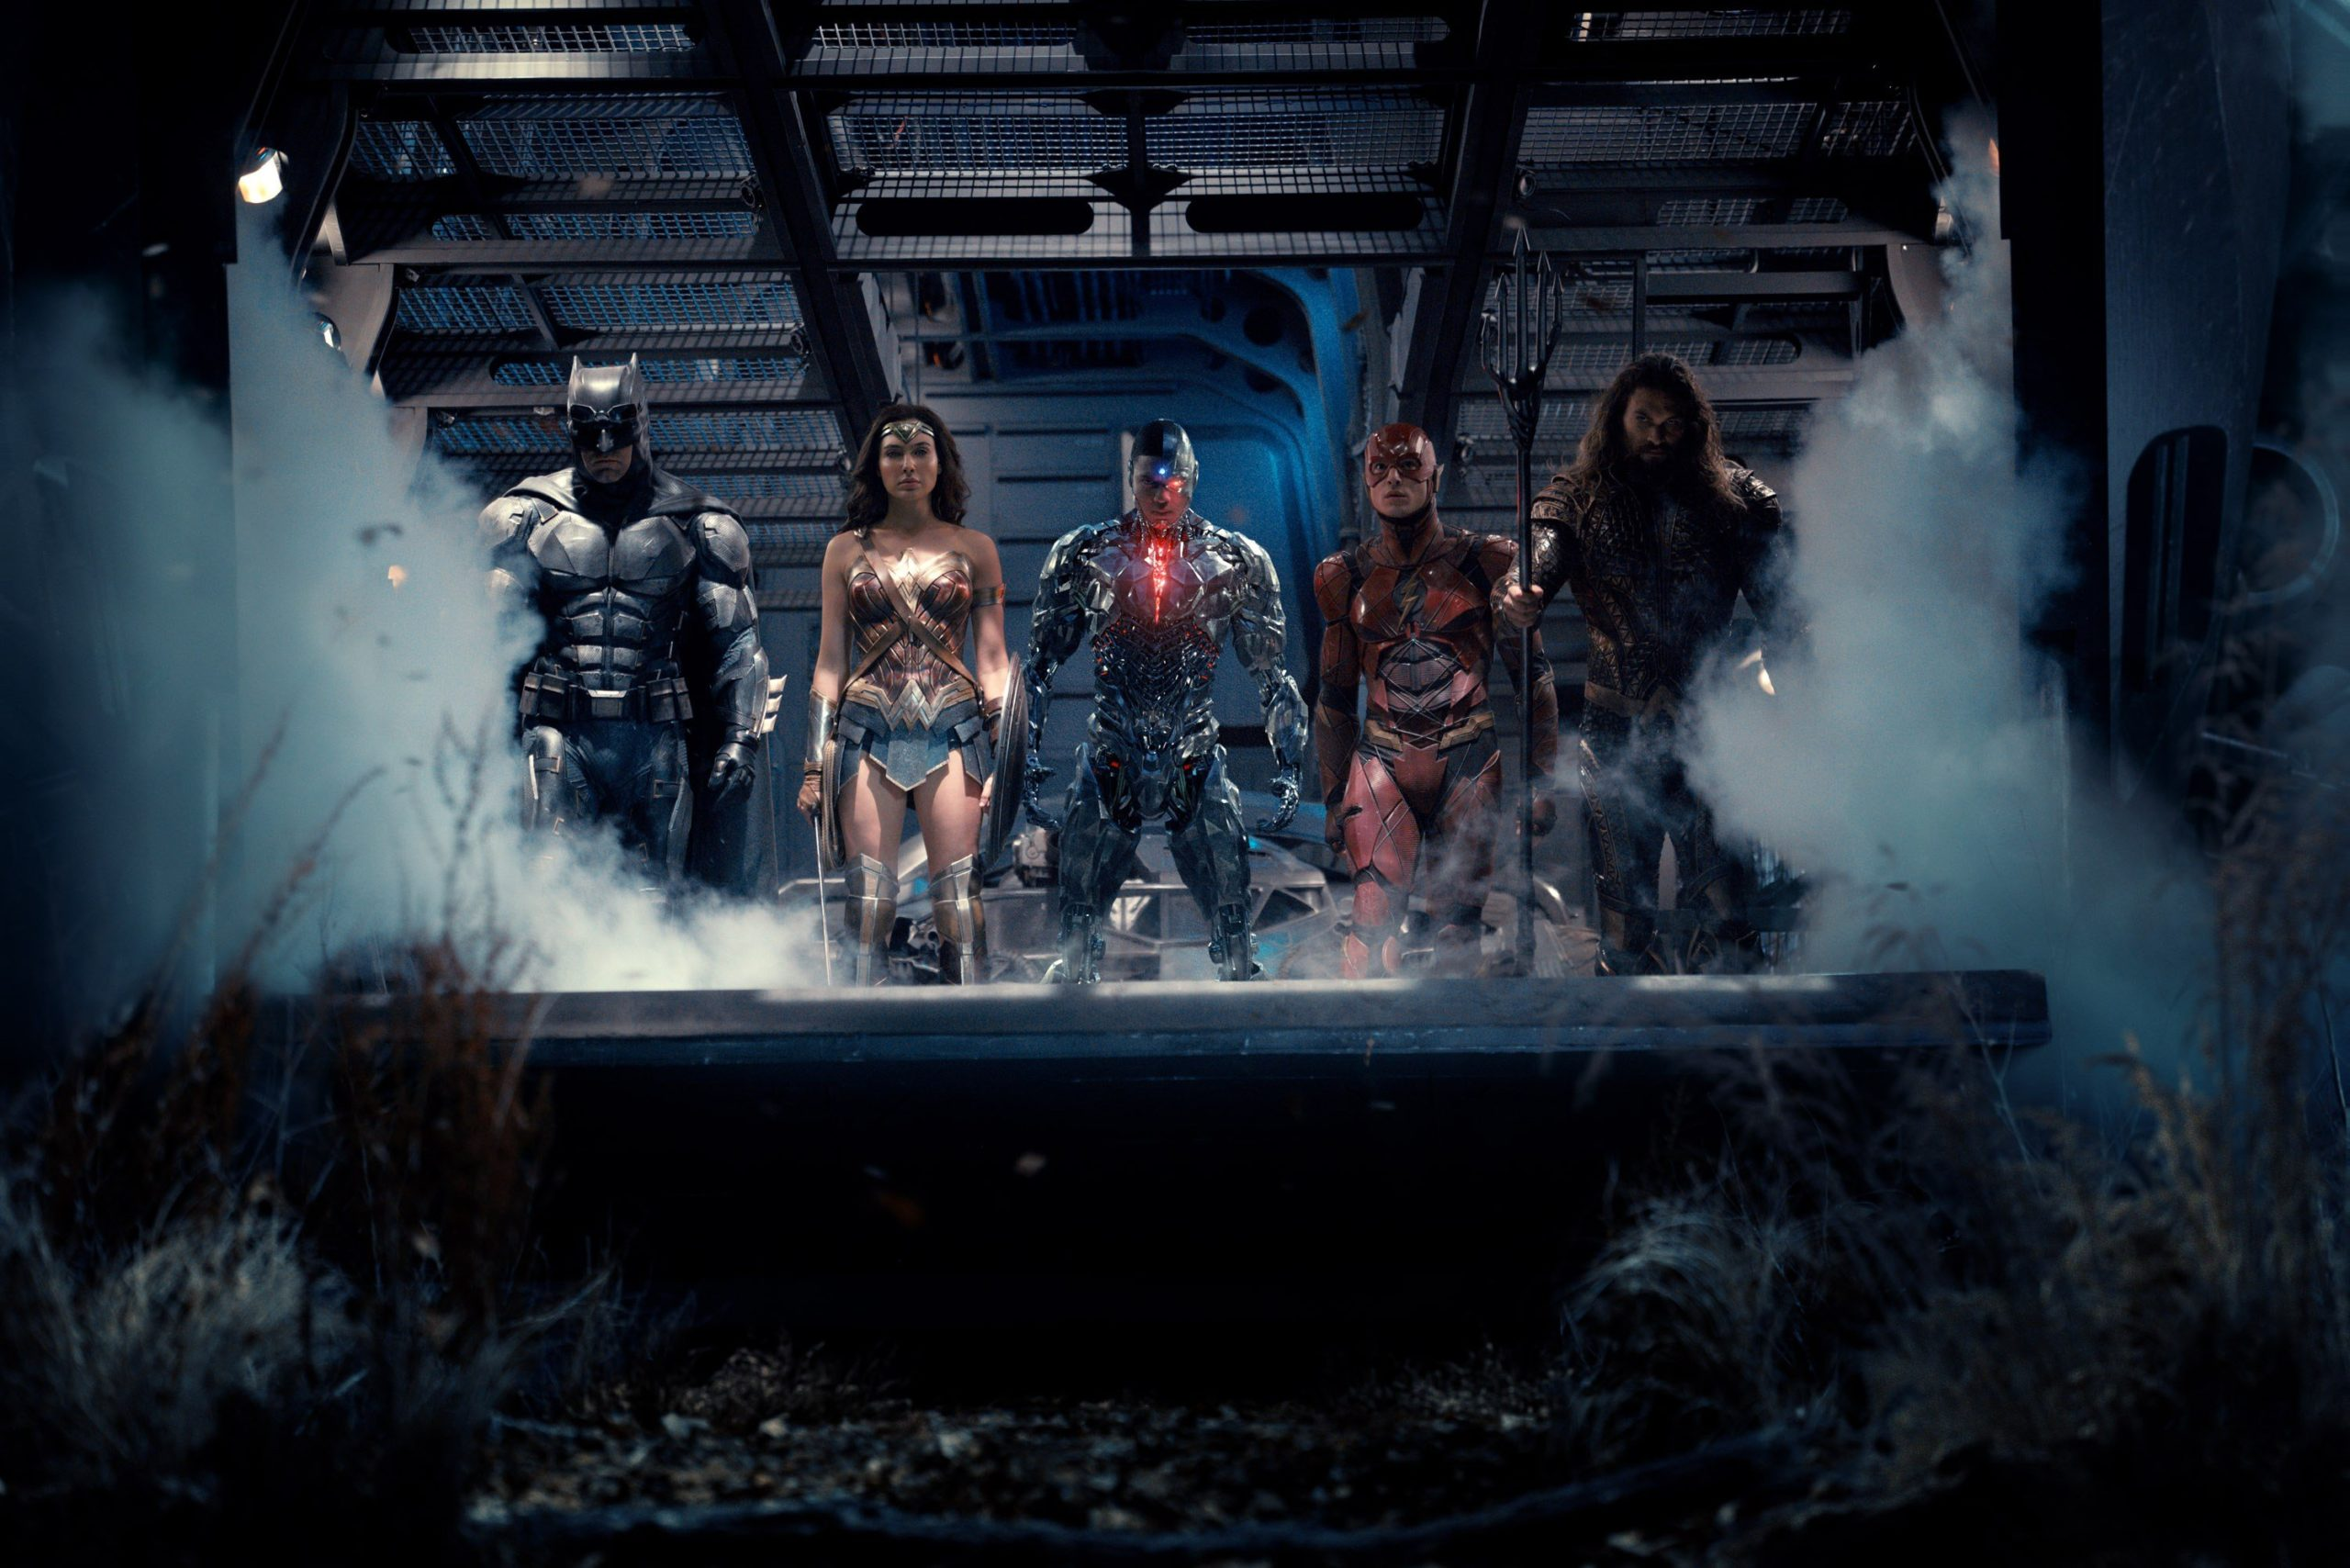 Photo de la Justice League avec de gauche à droite : Batman (Ben Affleck), Wonder Woman (Gal Gadot), Cyborg (Ray Fisher), The Flash (Ezra Miller) et Aquaman (Jason Momoa).